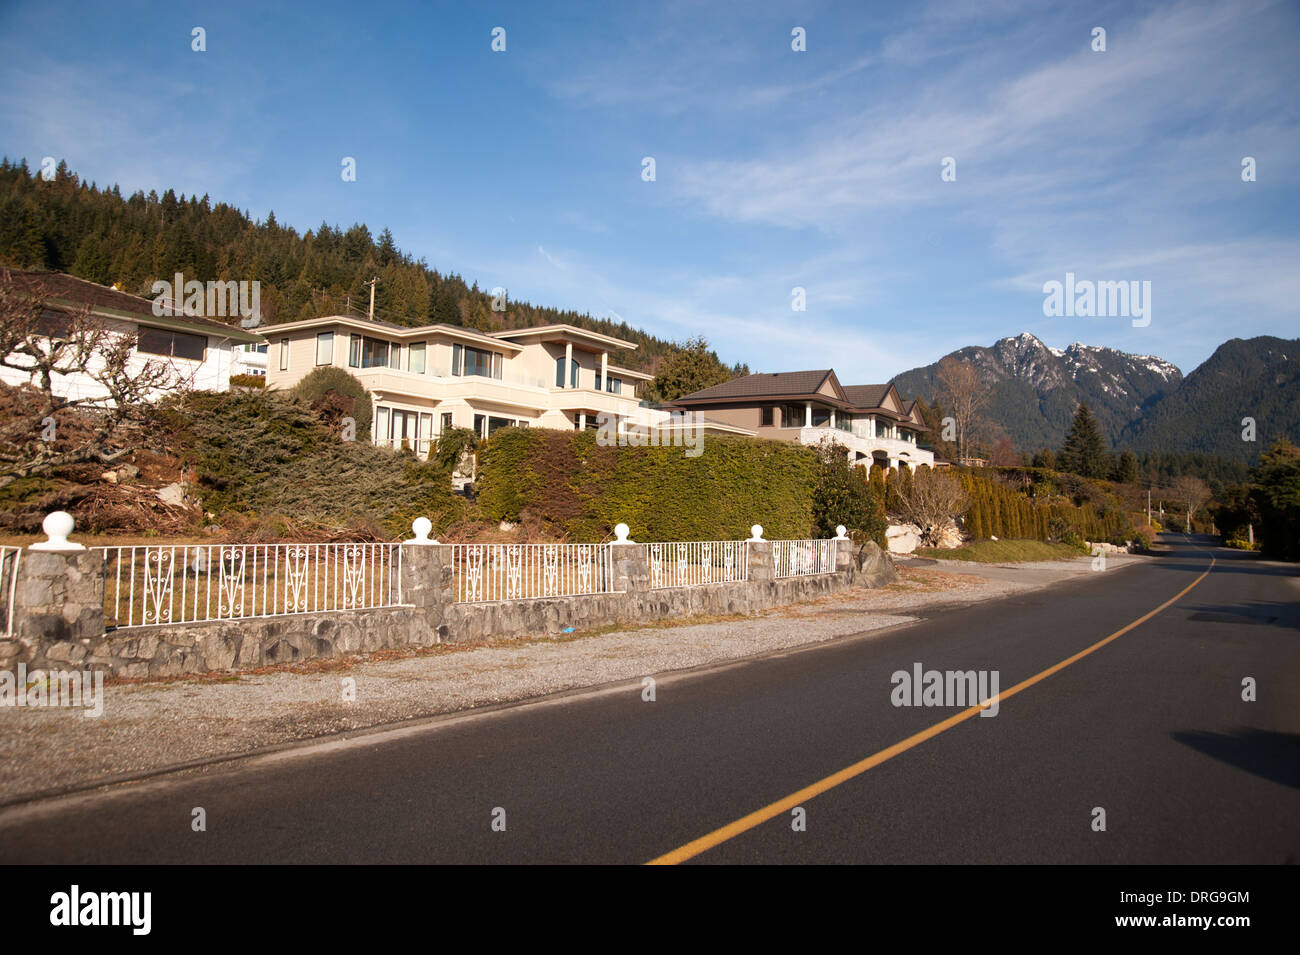 Neighborhood in the British Properties, West Vancouver, Canada with the mountains in the background - Stock Image